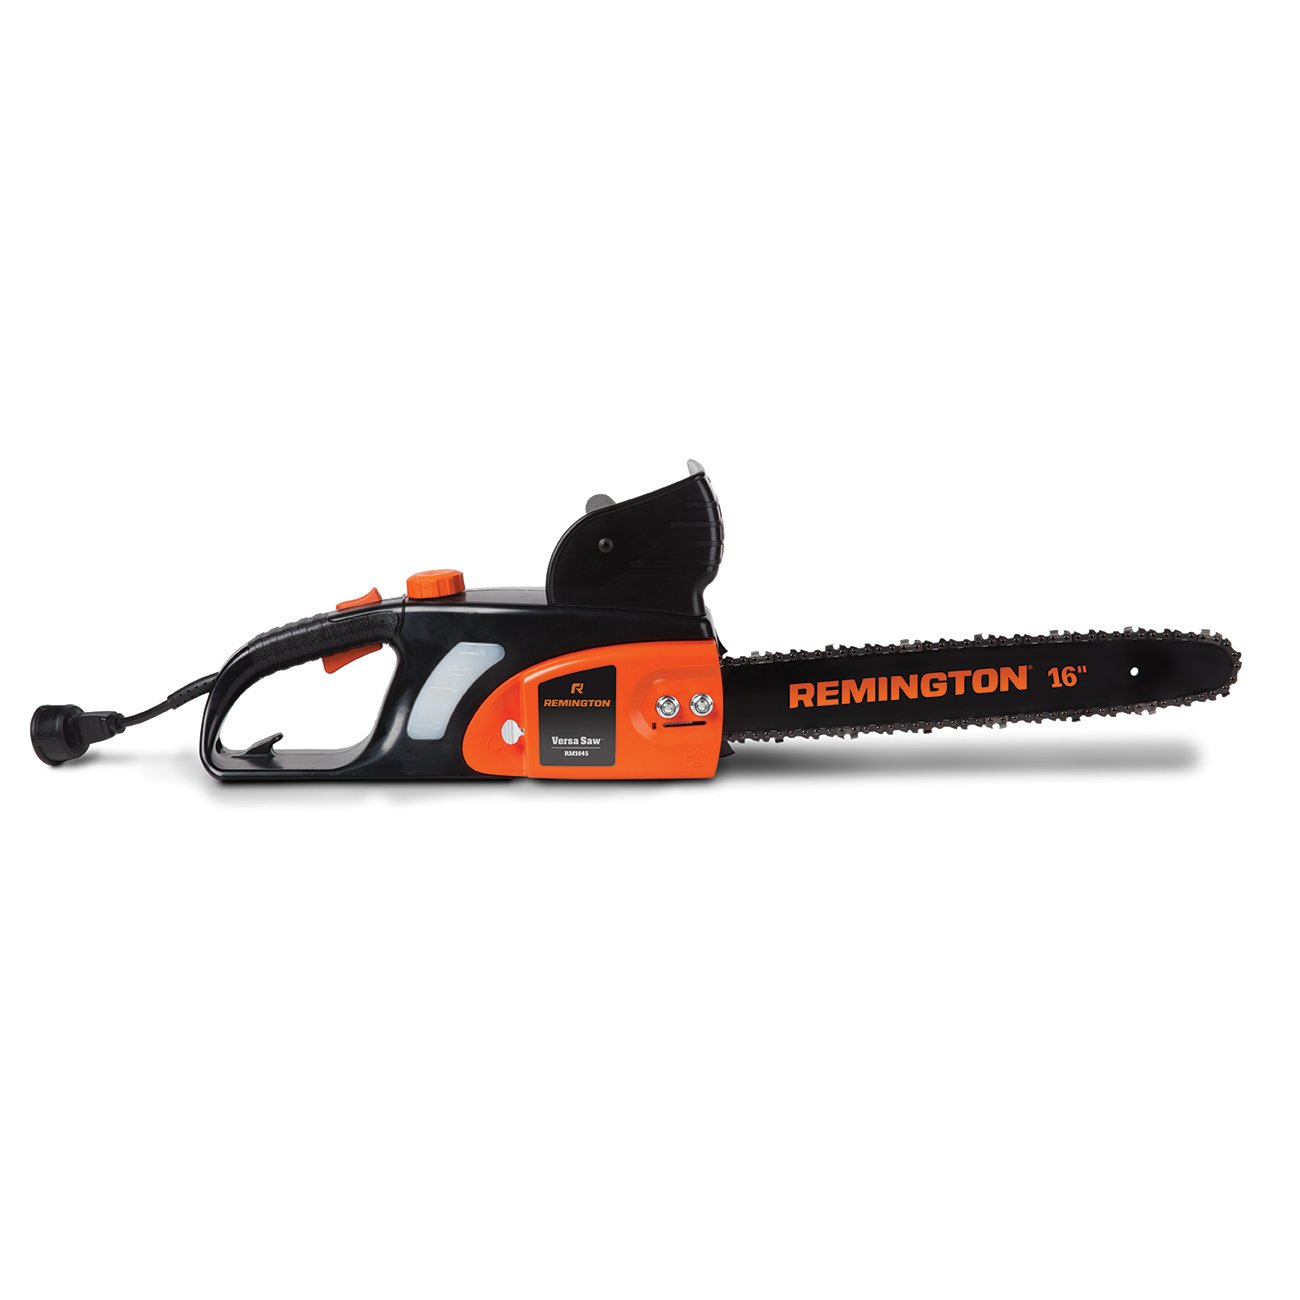 Amazon remington rm1645 versa saw 12 amp 16 inch electric amazon remington rm1645 versa saw 12 amp 16 inch electric chainsaw power chain saws garden outdoor keyboard keysfo Choice Image